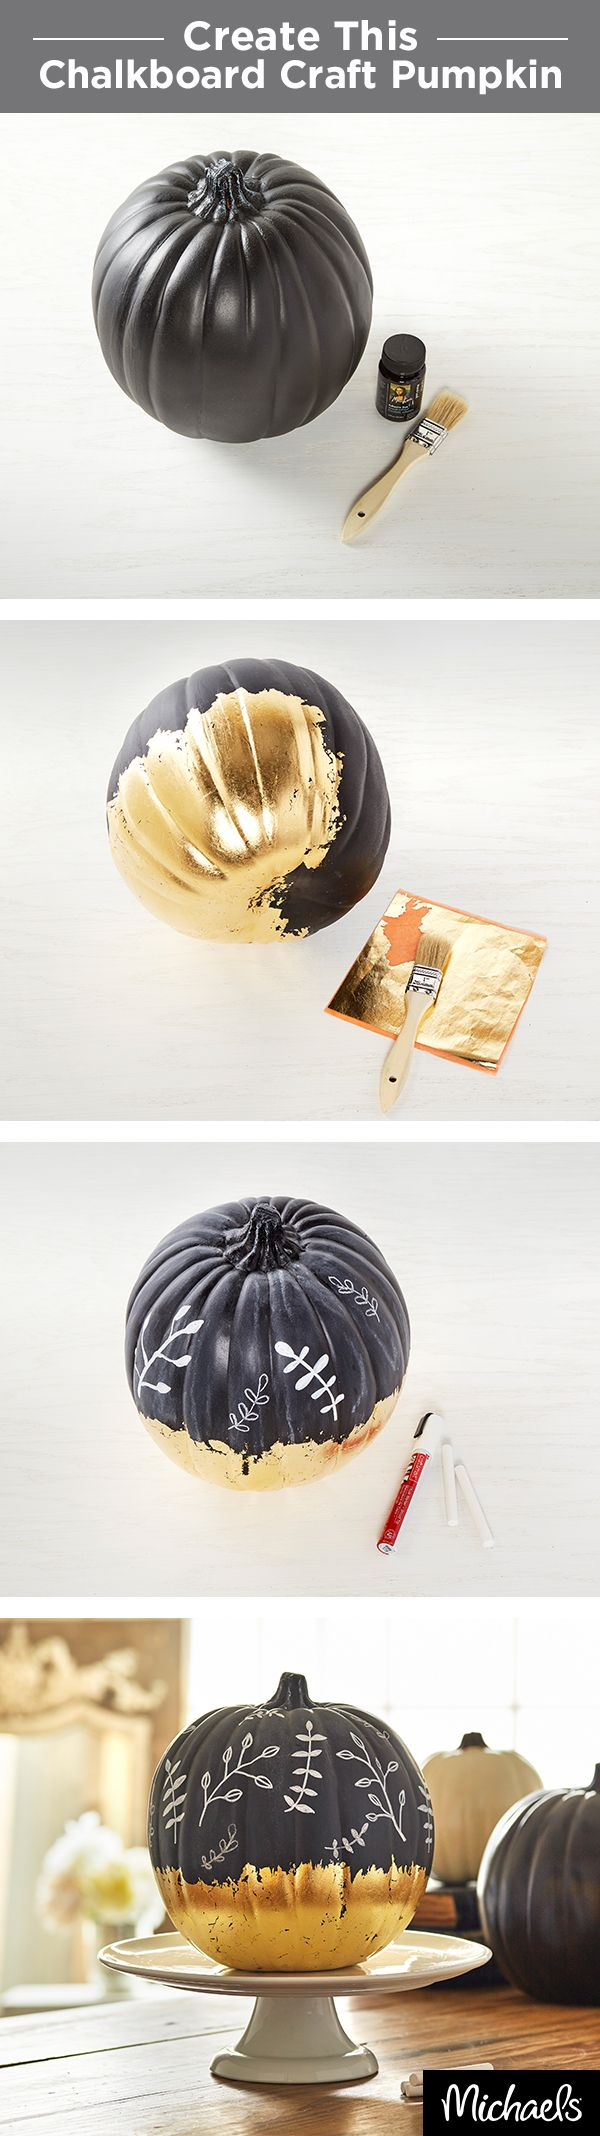 Craft a gilded chalkboard craft pumpkin in a few easy steps! Chalkboard pumpkins are ready to craft. Paint bottom of pumpkin with gold leaf adhesive. Tip: Use feathered brush strokes for an antiqued look. Place sheets of gold leaf onto the tacky areas of pumpkin & rub.  Use white chalk to prime the top half of pumpkin, rubbing it all over & wiping off. Draw designs or phrases on chalkboard area using chalk or chalk marker. Find everything you need to make this at your local Michaels store.